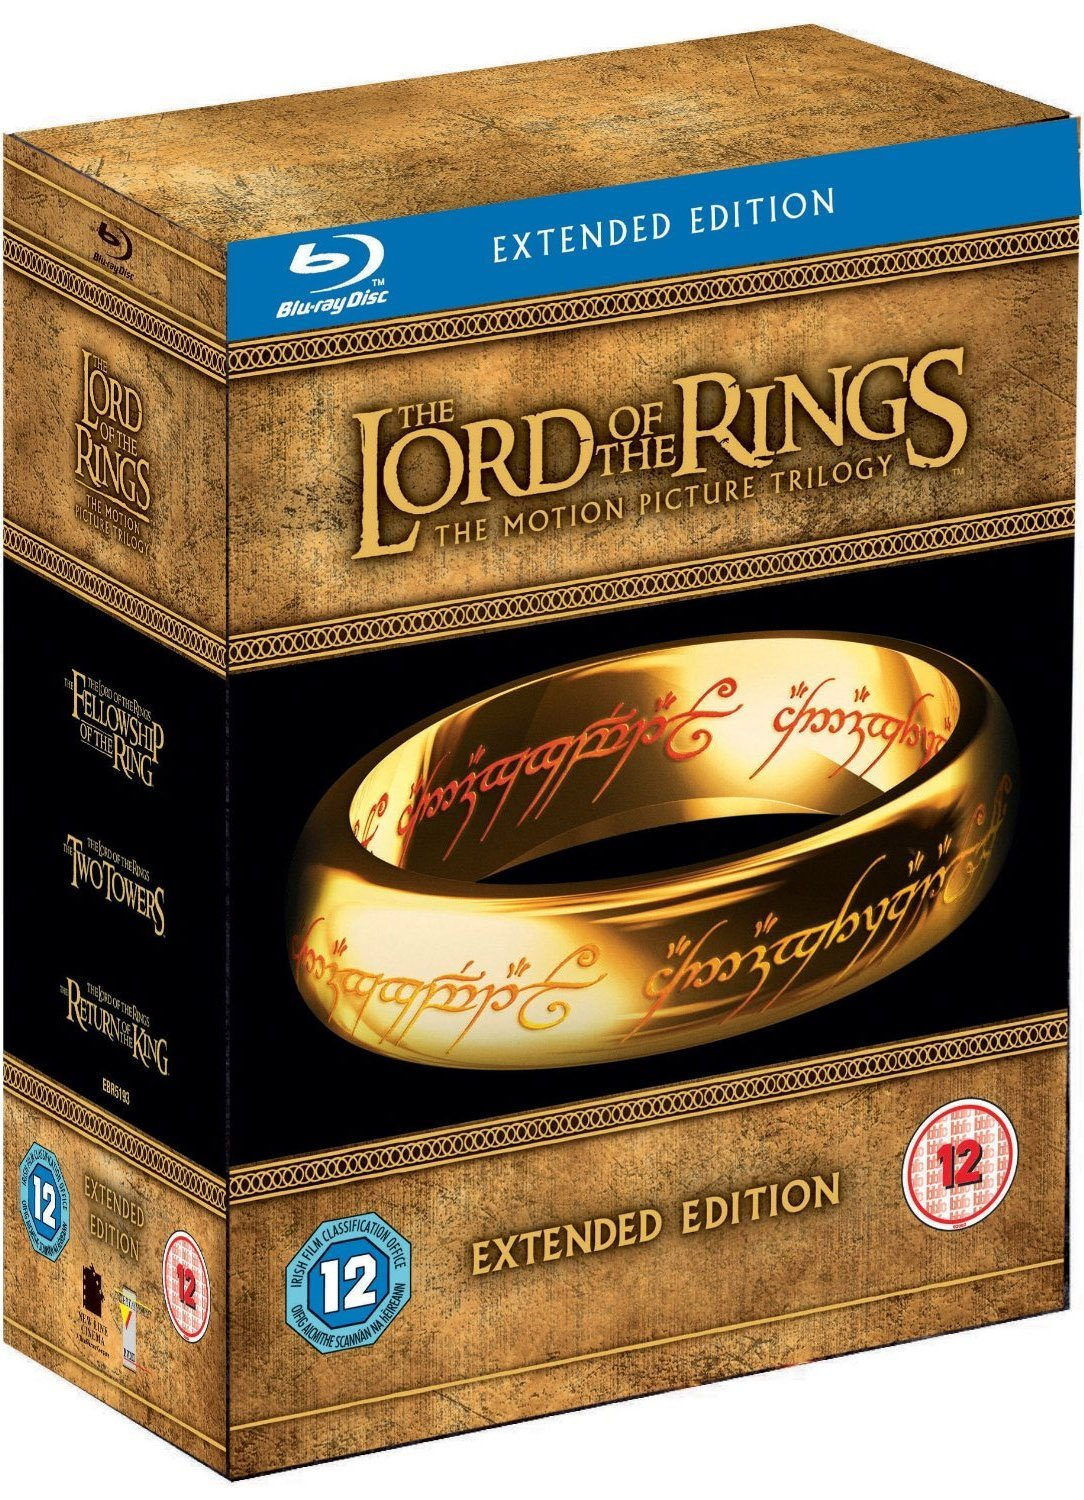 Extended Edition Lord of the Rings Trilogy Blu-ray 15 Disc Box Set New & Sealed